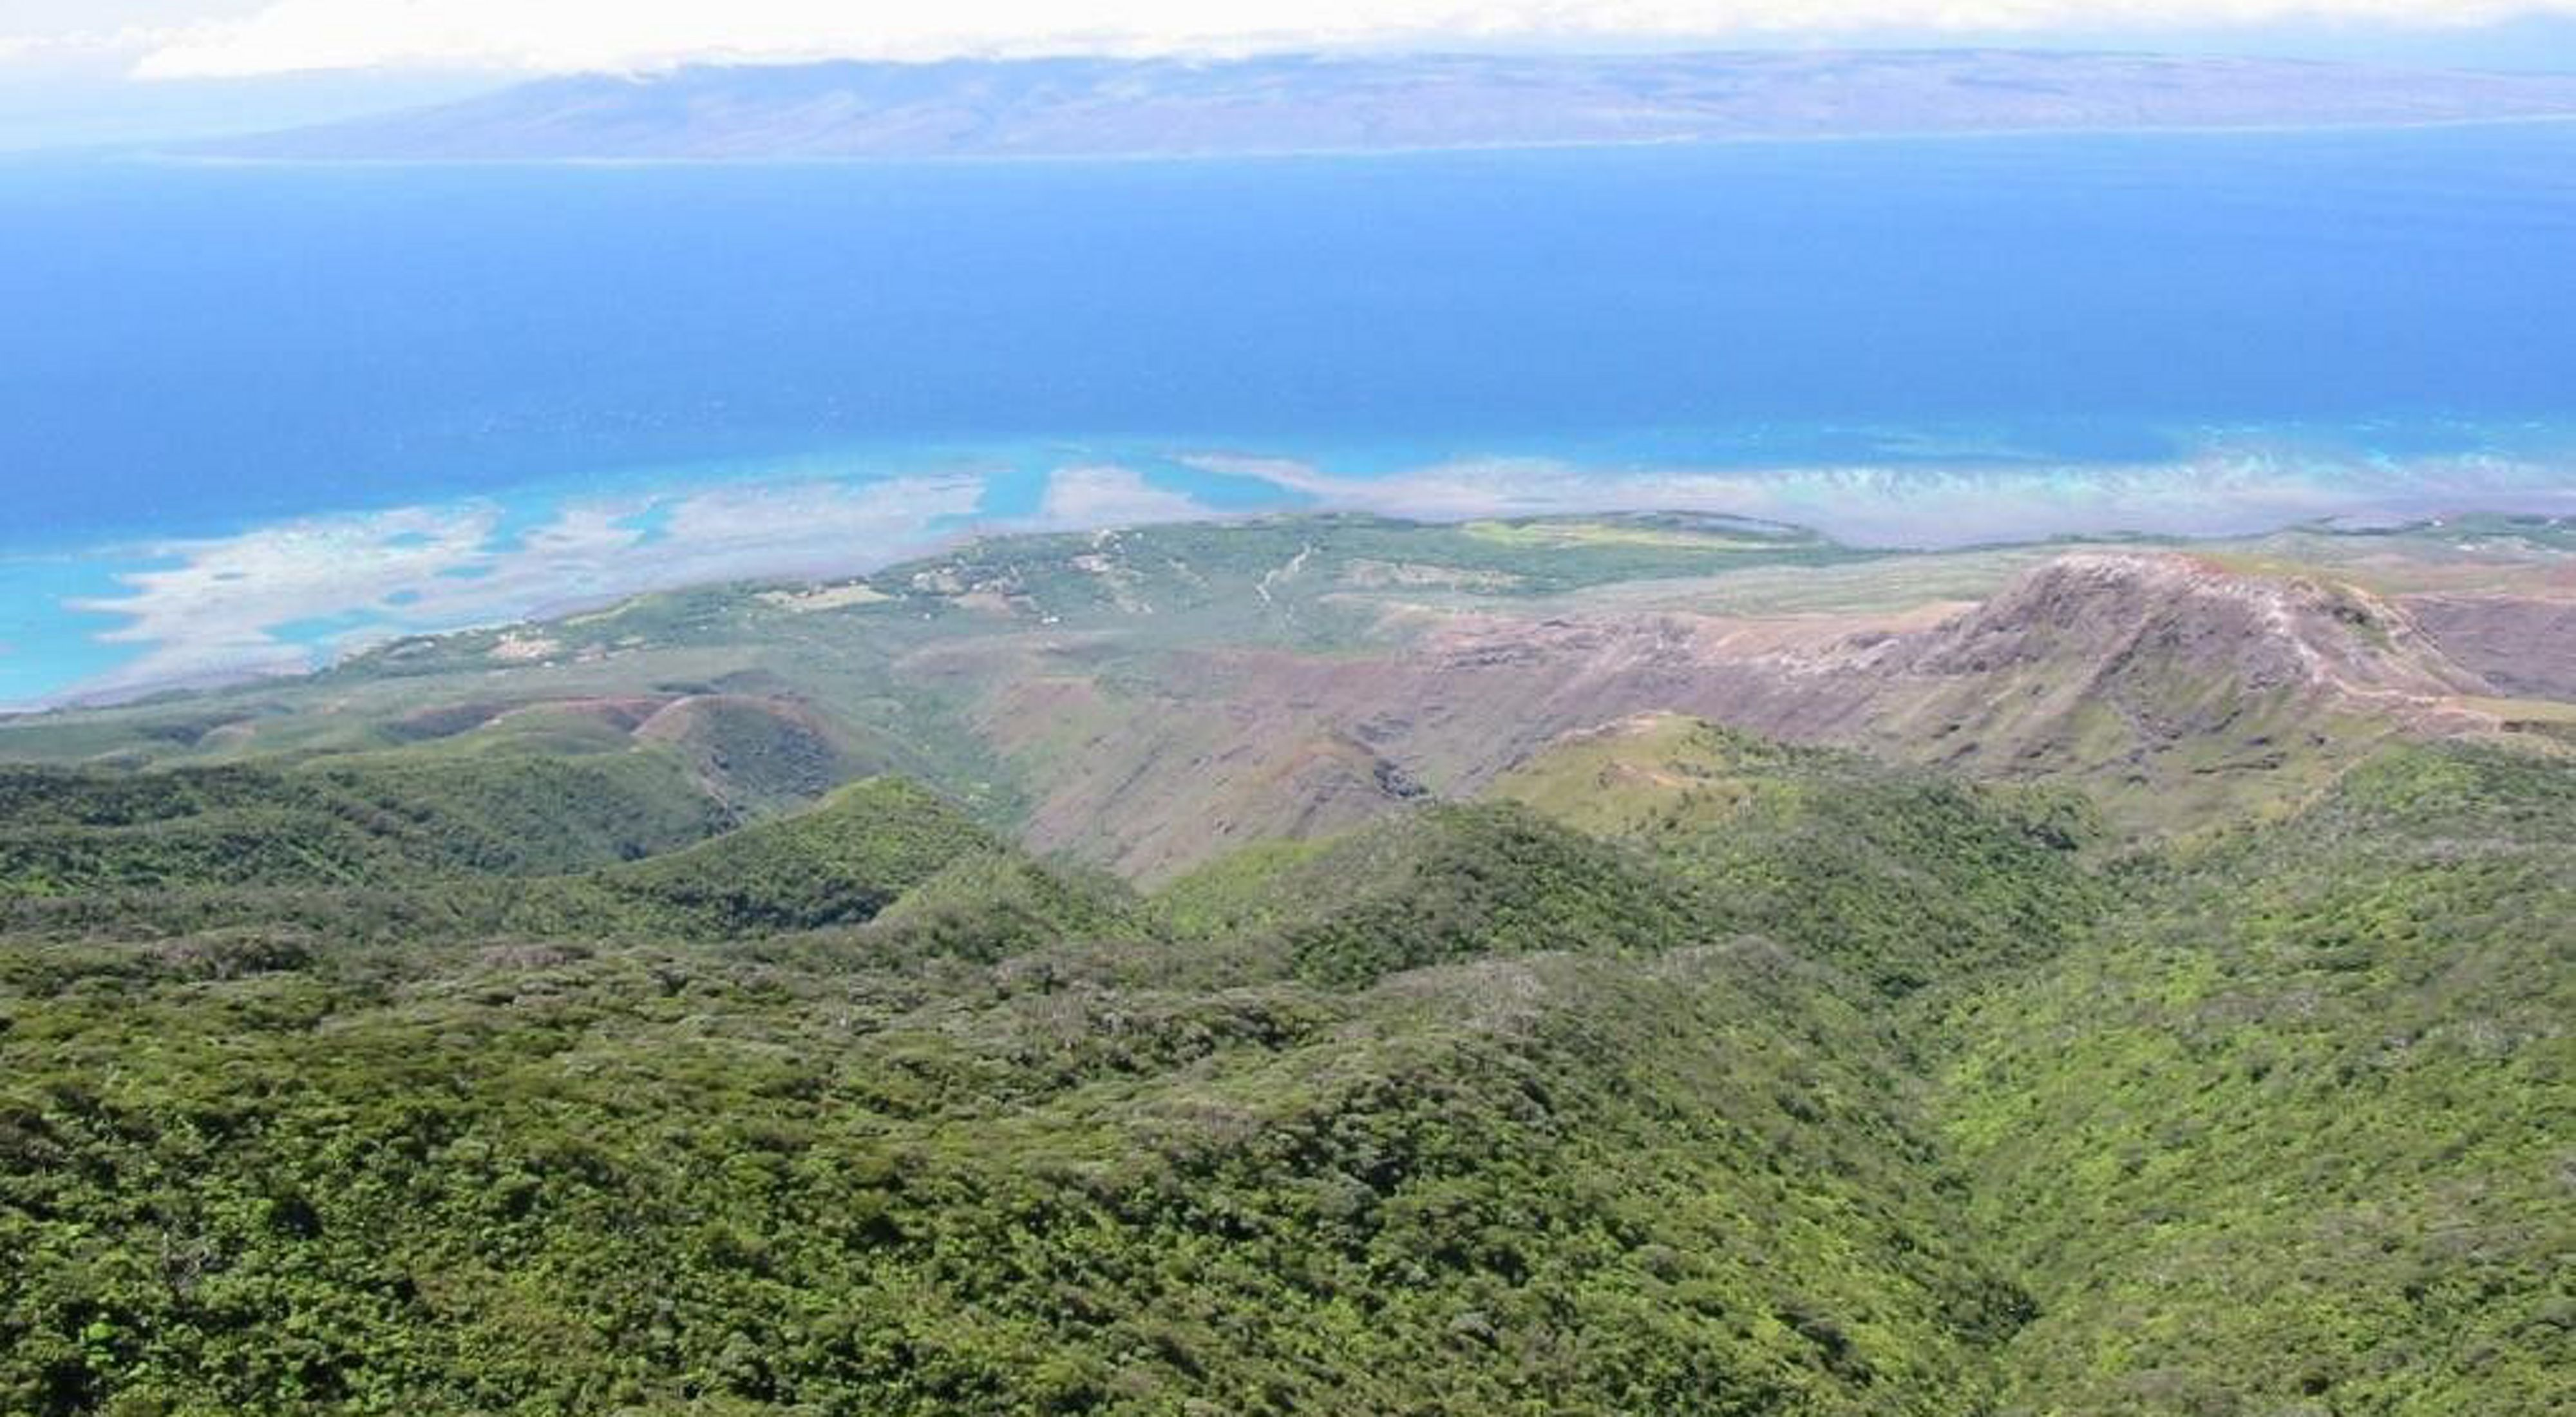 Aerial view of forests and mountains on Moloka'i